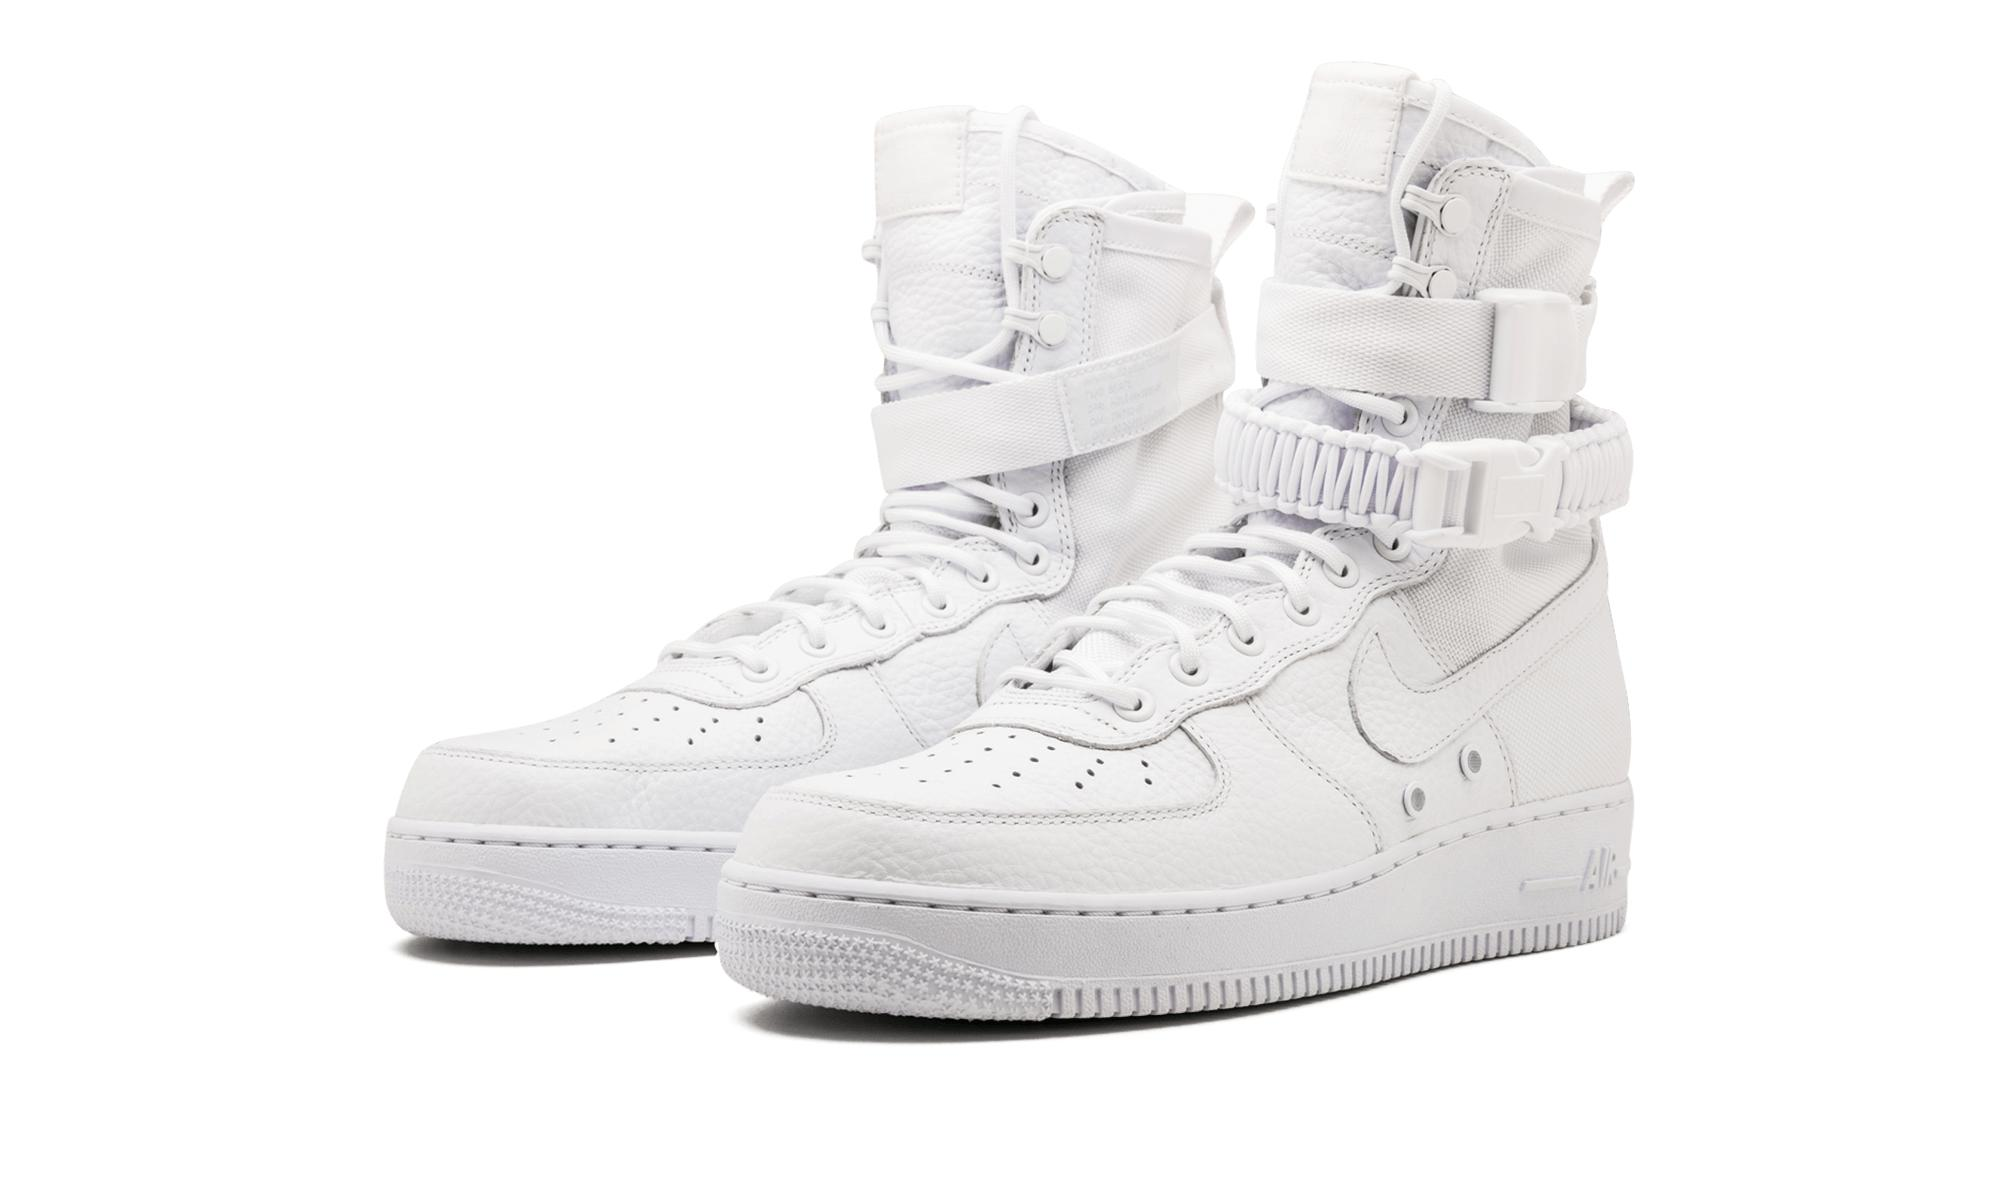 182648847d4 ... air force SPECIAL  Nike - White Sf Af1 Qs for Men - Lyst. View  fullscreen sleek 72afe 0fa0b ...